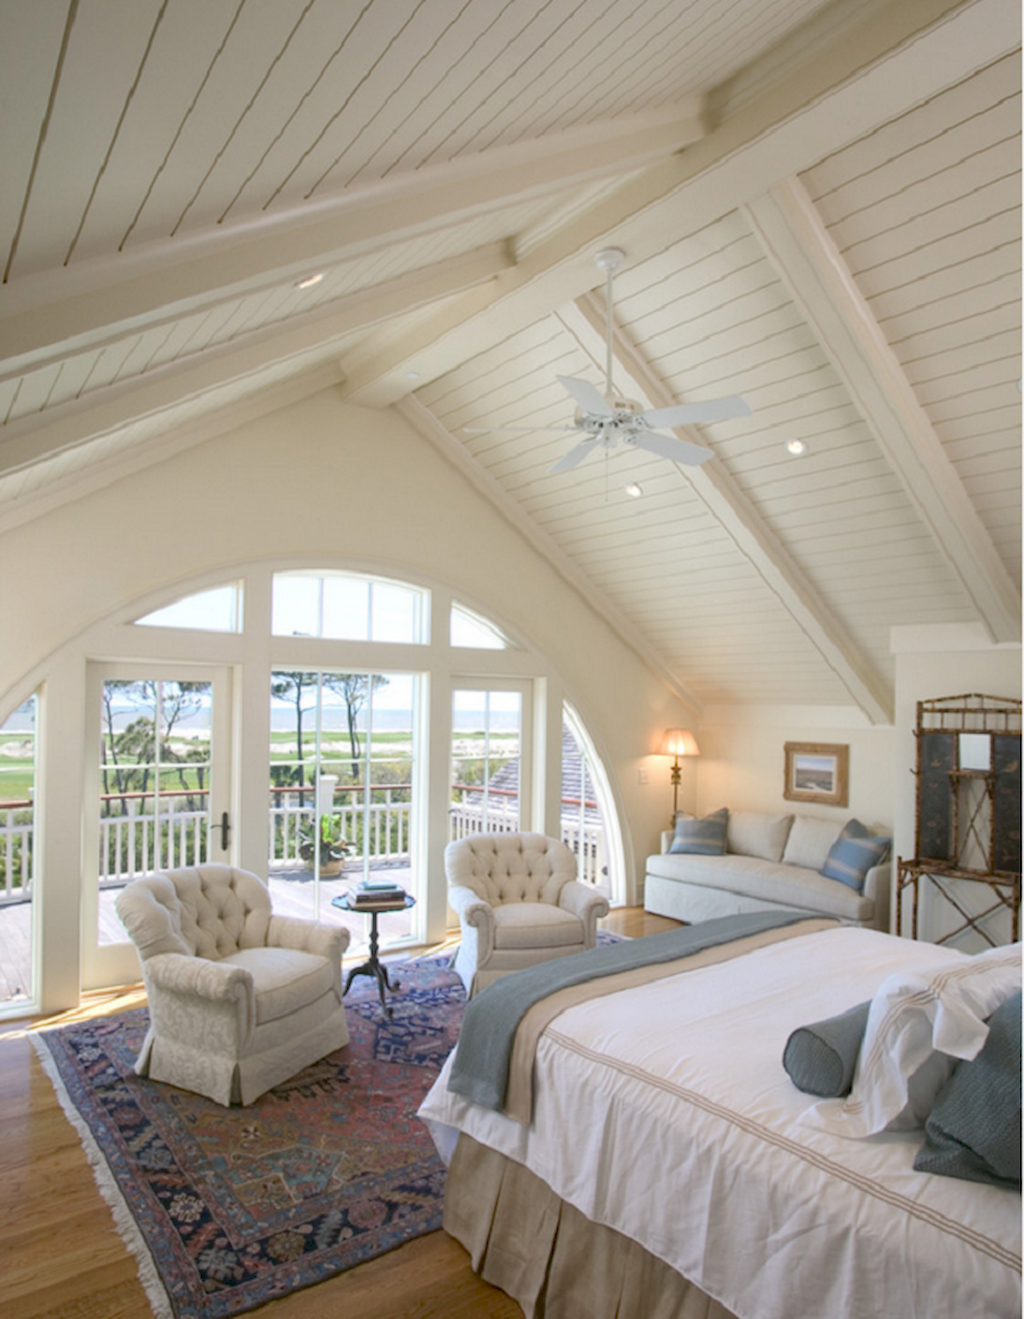 50 Rustic Lake House Bedroom Decorating Ideas | Lake house bedrooms on cottage master bedroom, house beautiful master bedroom, pool master bedroom, cabin master bedroom, patio master bedroom, nantucket master bedroom, hotel master bedroom, architectural digest master bedroom, family master bedroom, lake home bedroom, spring master bedroom, outdoors master bedroom, mercer house master bedroom, home master bedroom, veranda master bedroom, ranch house master bedroom, modern lake house bedroom, barn master bedroom, art master bedroom, chairs master bedroom,